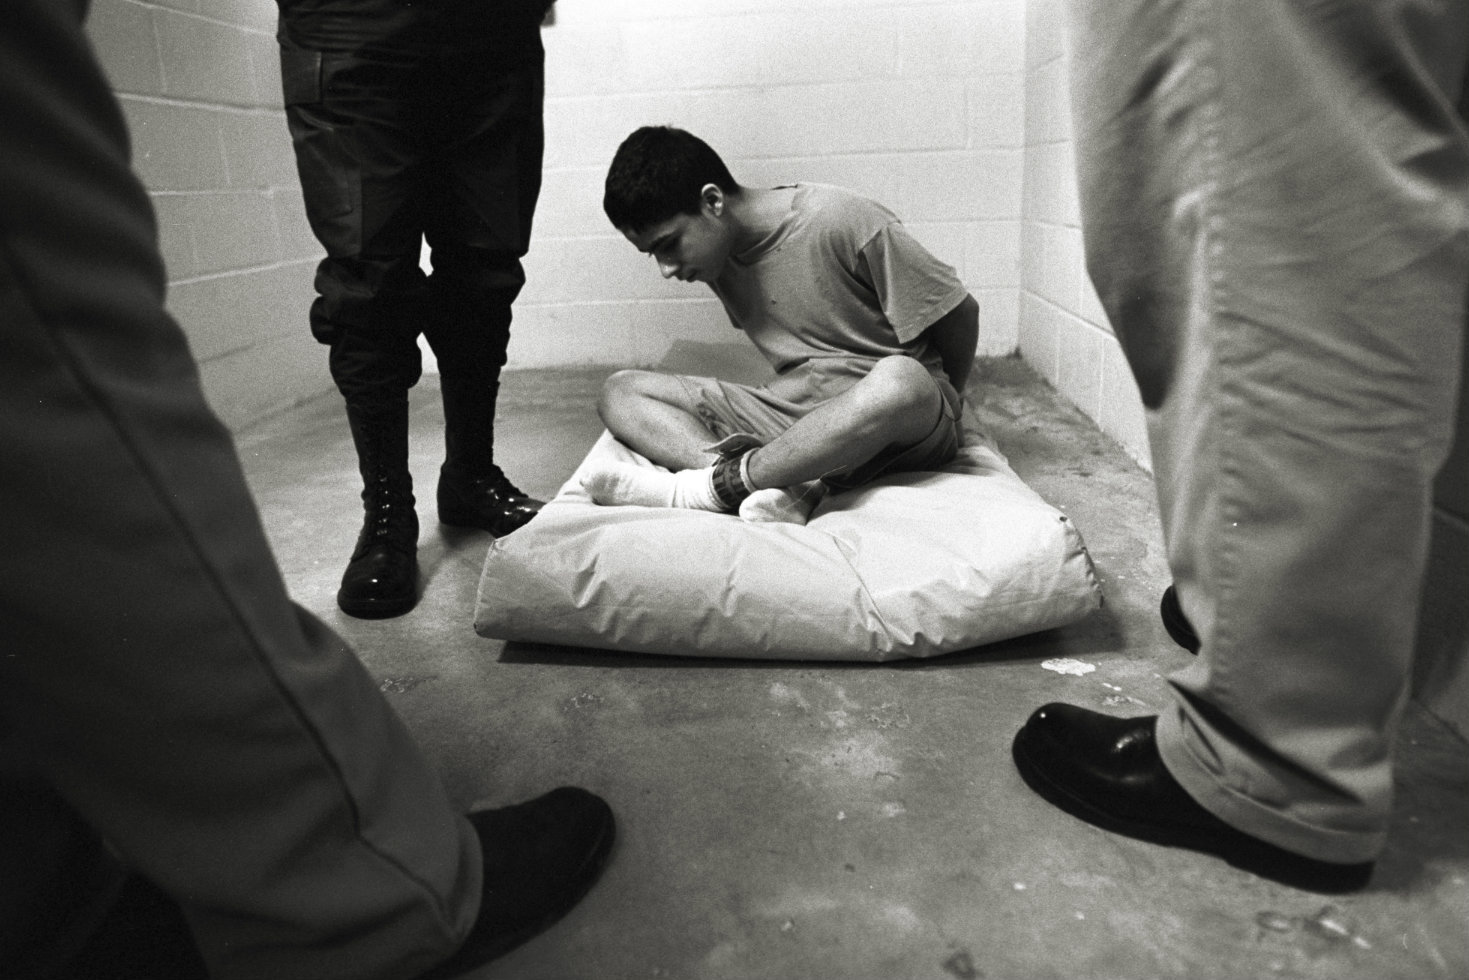 American Kids in CHAINS - Why Do We Still Put Kids in Shackles When ...